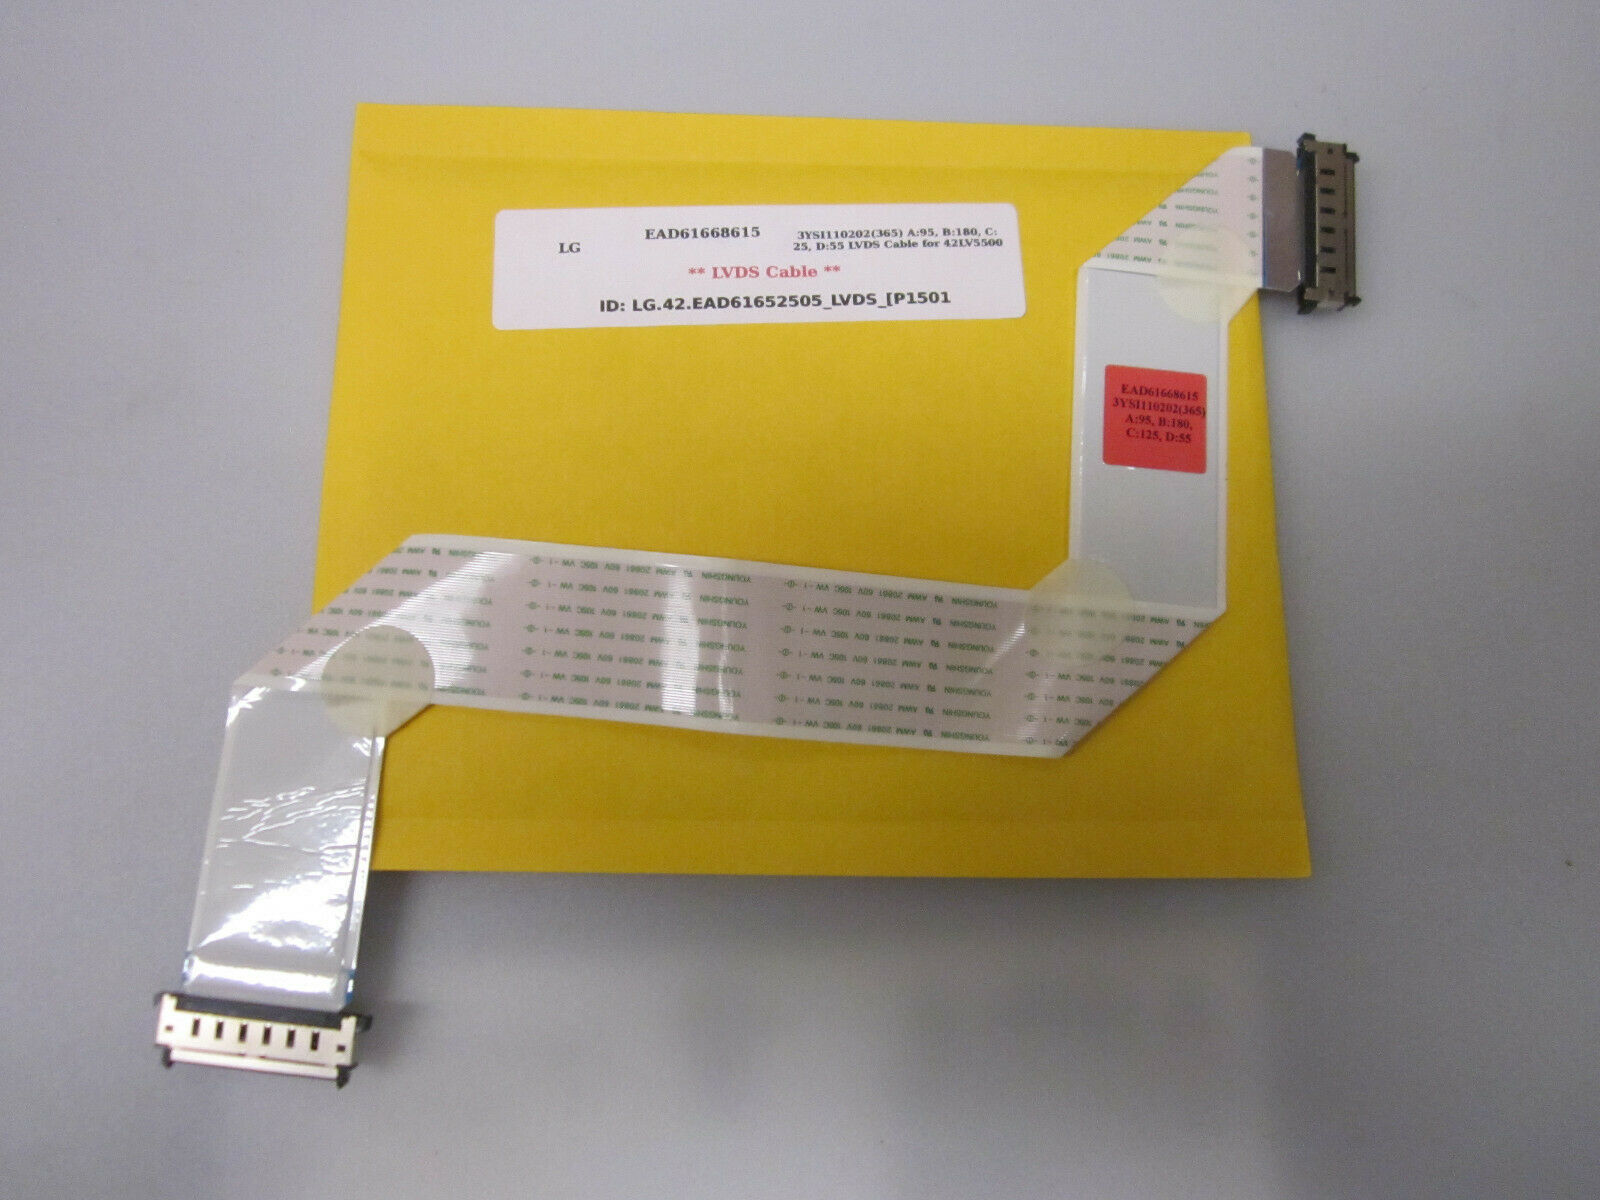 Primary image for LG EAD61668615 3YSI110202(365) A:95, B:180, C:25, D:55 LVDS Cable for 42LV5500